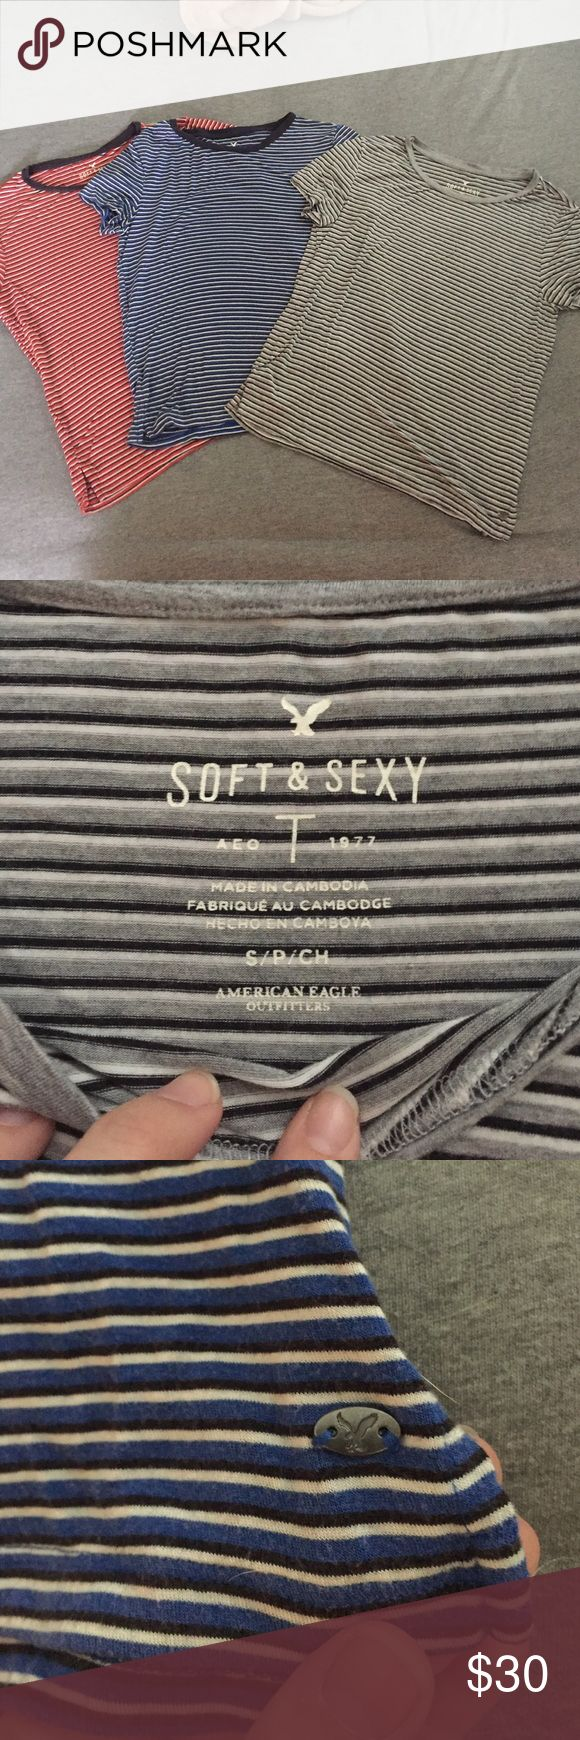 American Eagle Soft and Sexy shirts Bought them and they don't fit me, too small! They are $40 a piece in stores. American Eagle Outfitters Tops Crop Tops